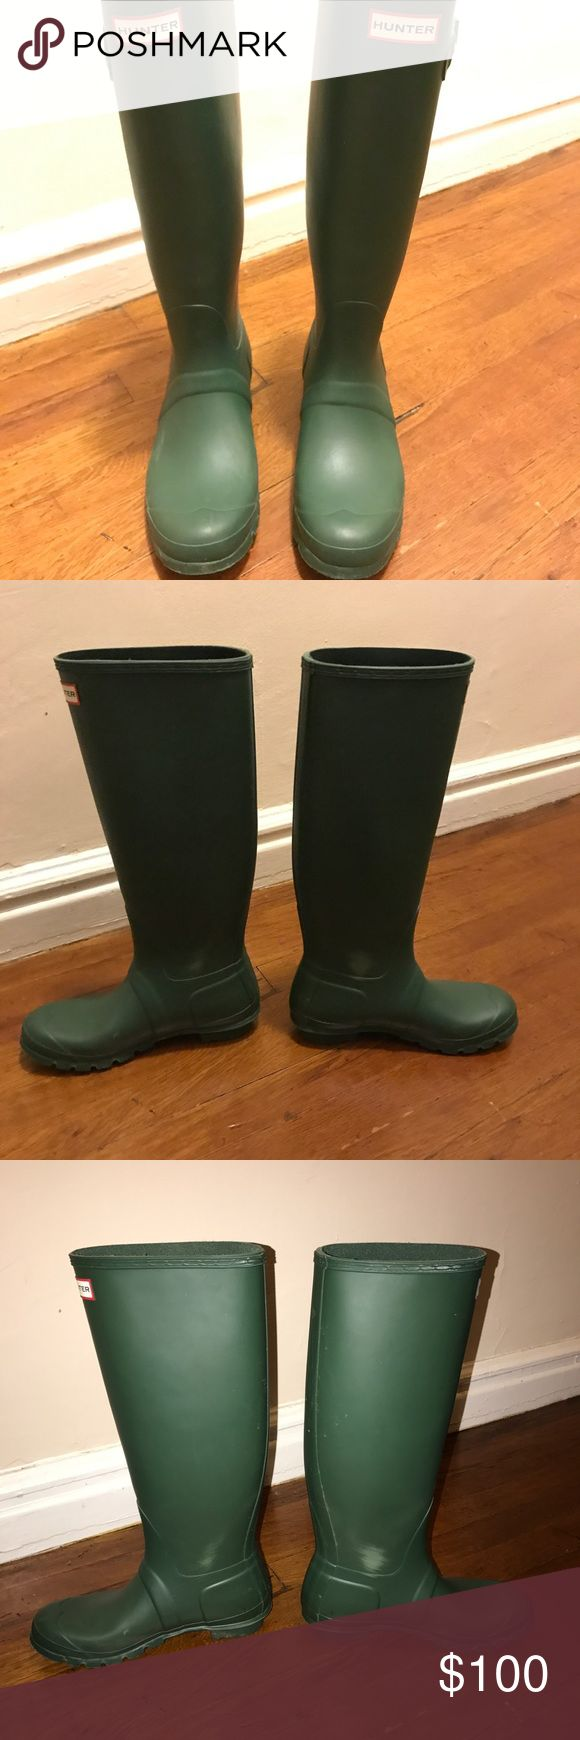 "Tall Hunter Rain-boots Green Size 8 Gently used tall dark green Hunter Wellies! Great condition, no real damage to report. They are 17"" tall and the opening at the top is 6.5"" across. Super comfy and size 8 US (39 EU). Bought for $150 one year ago! Worn less than 5 times. Hunter Boots Shoes Winter & Rain Boots"